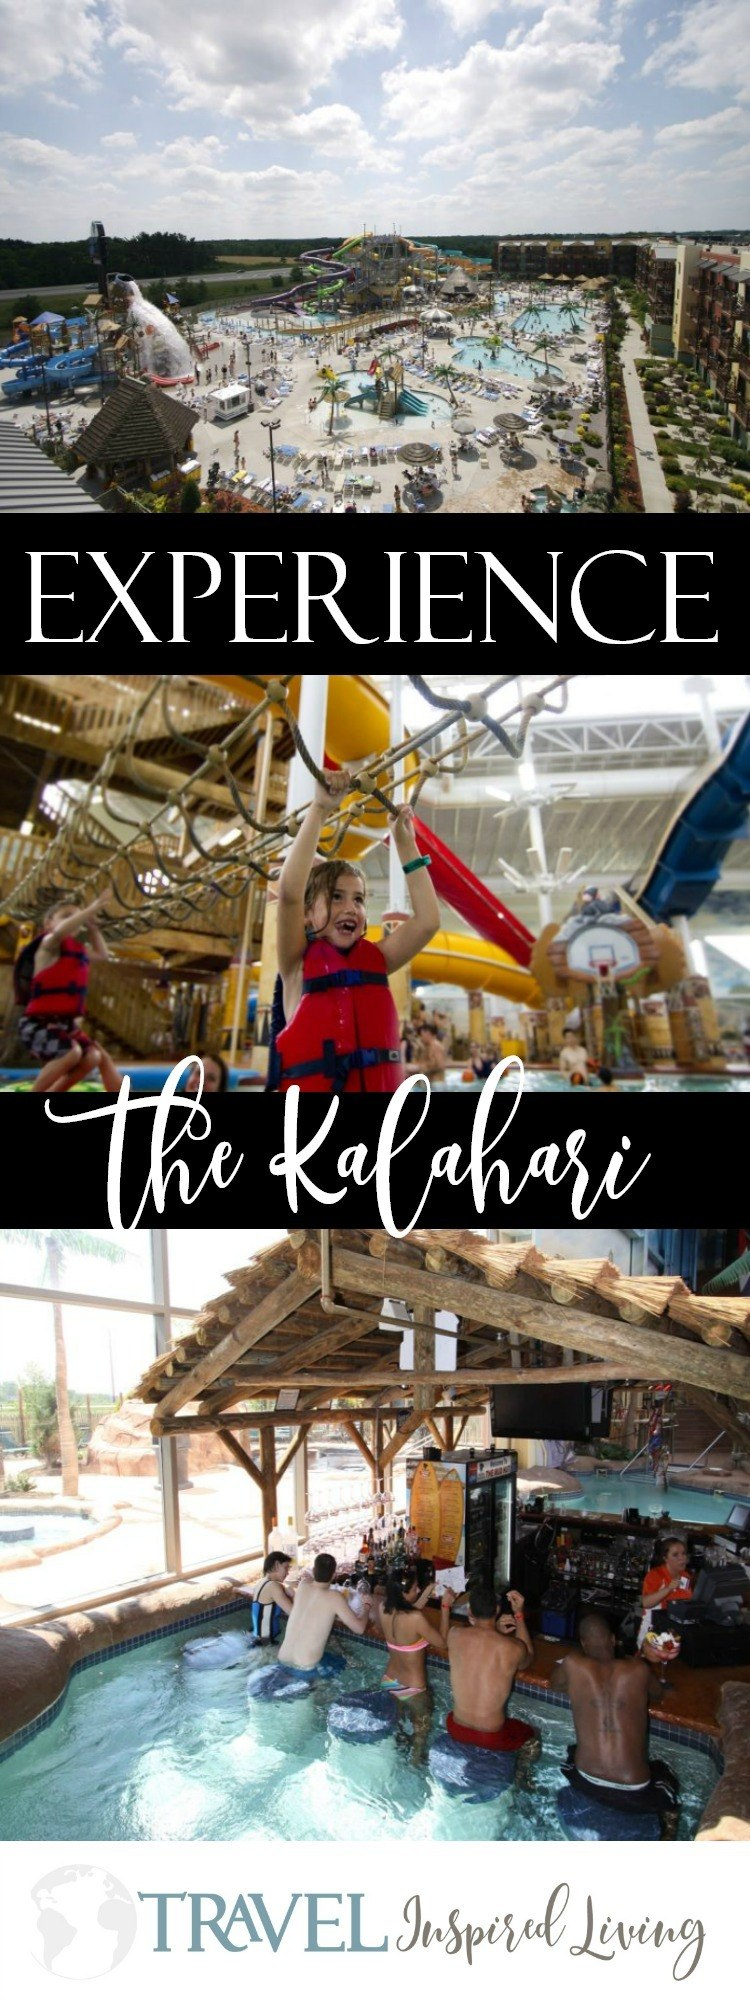 Tips to enhance your visit to the Kalahari Resort in Sandusky Ohio. #ad #LoveKalahari